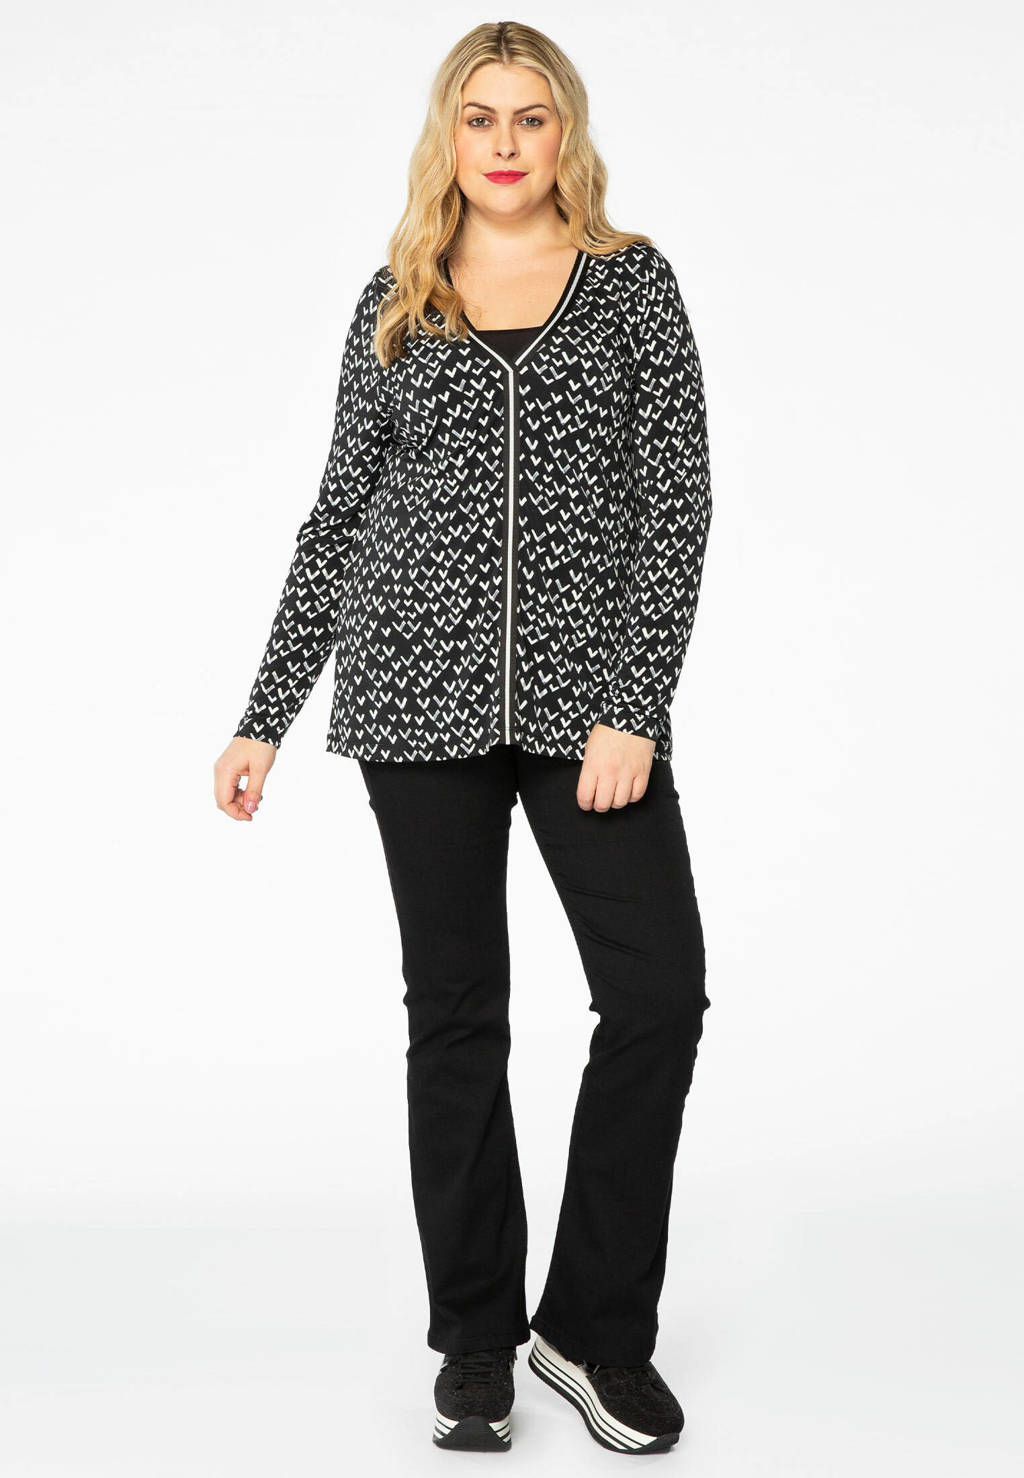 Yoek top met all over print zwart/wit, Zwart/wit